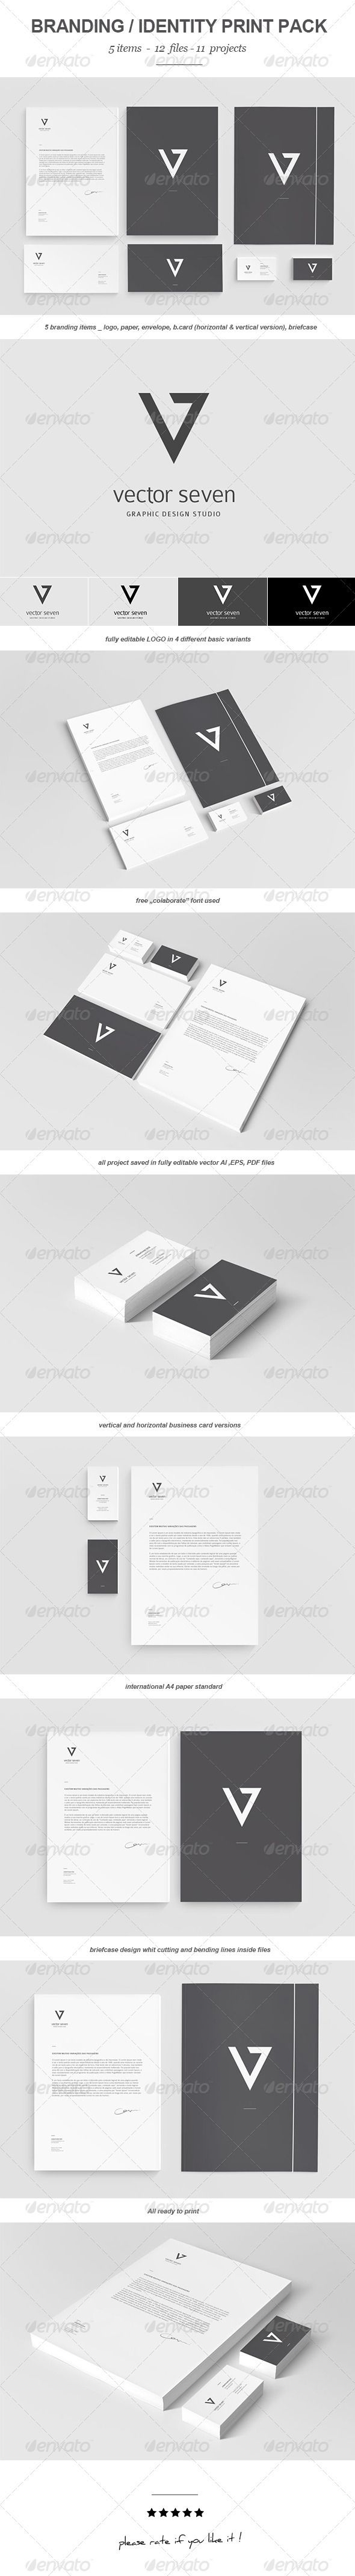 303 best Business Card images on Pinterest